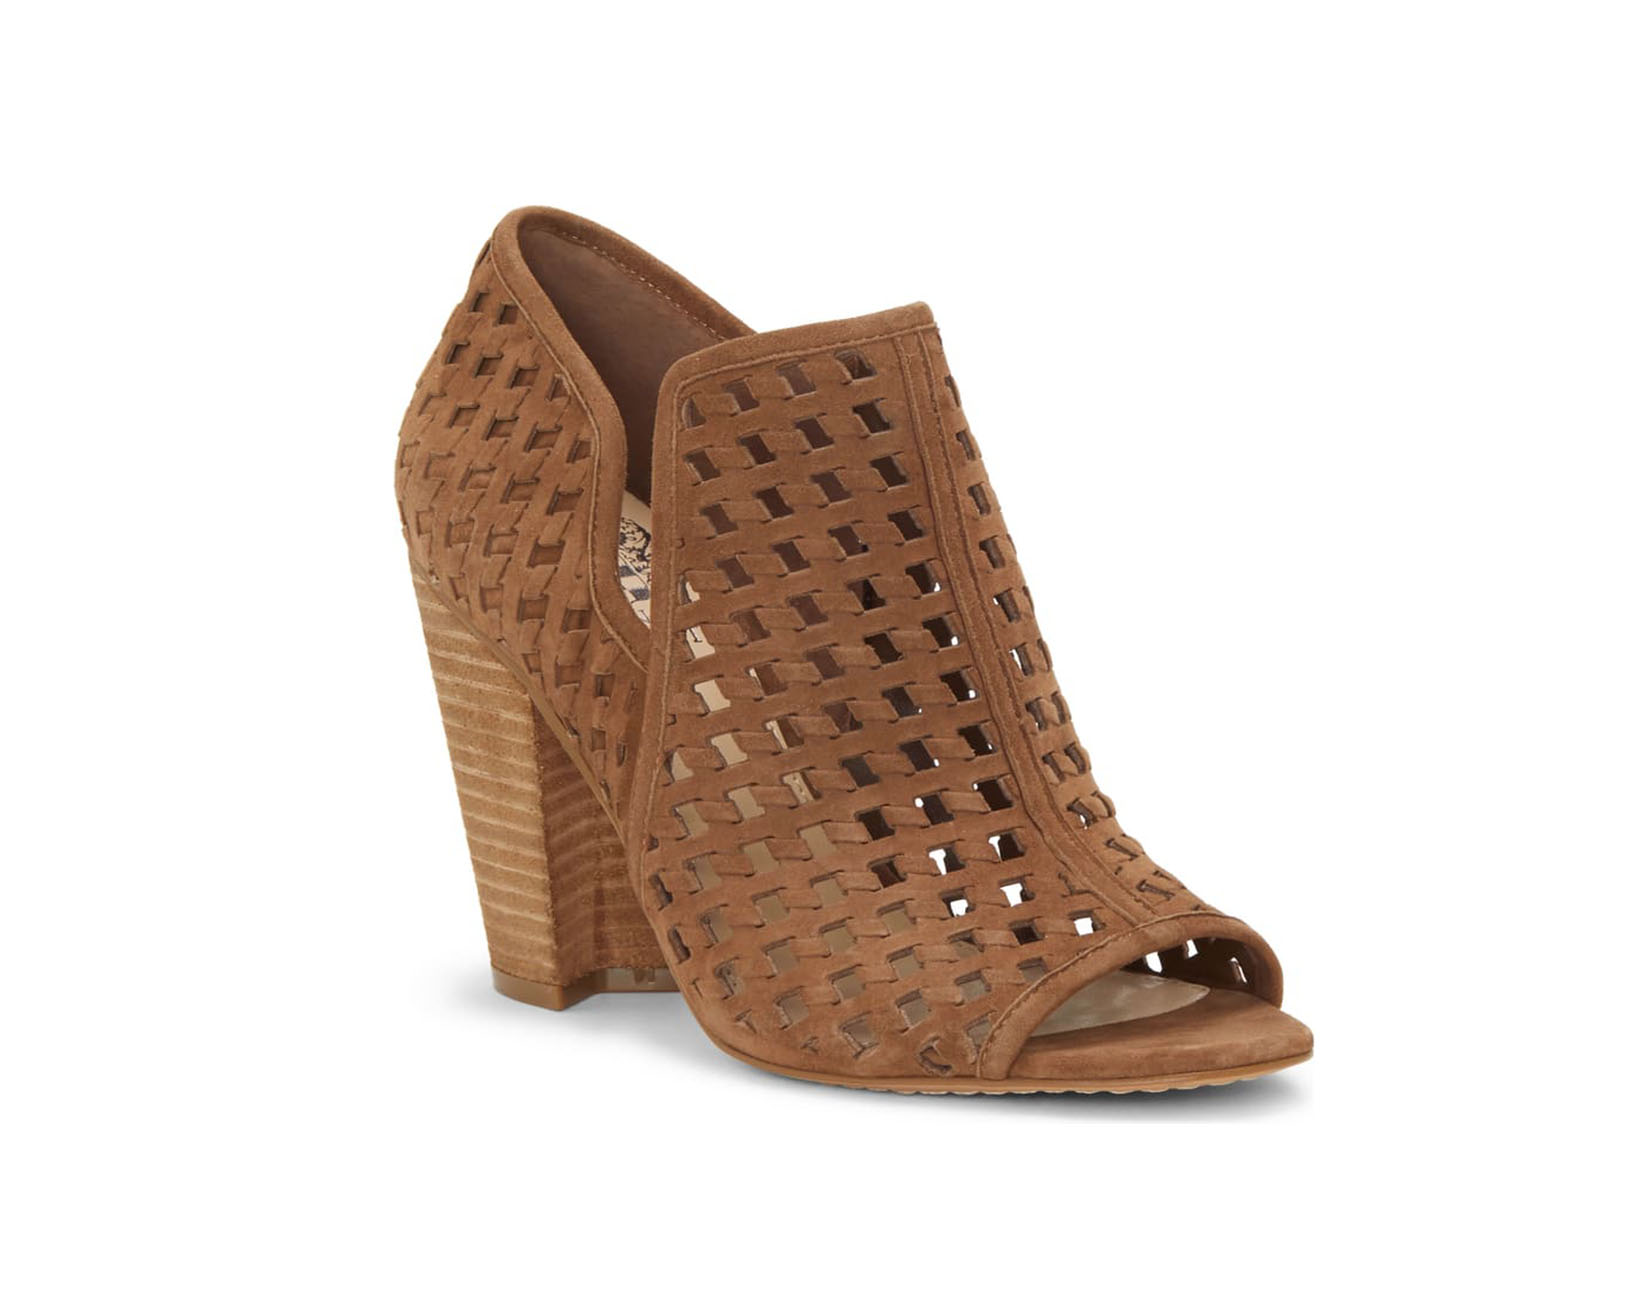 Vince Camuto Perforate Peep Toe Bootie